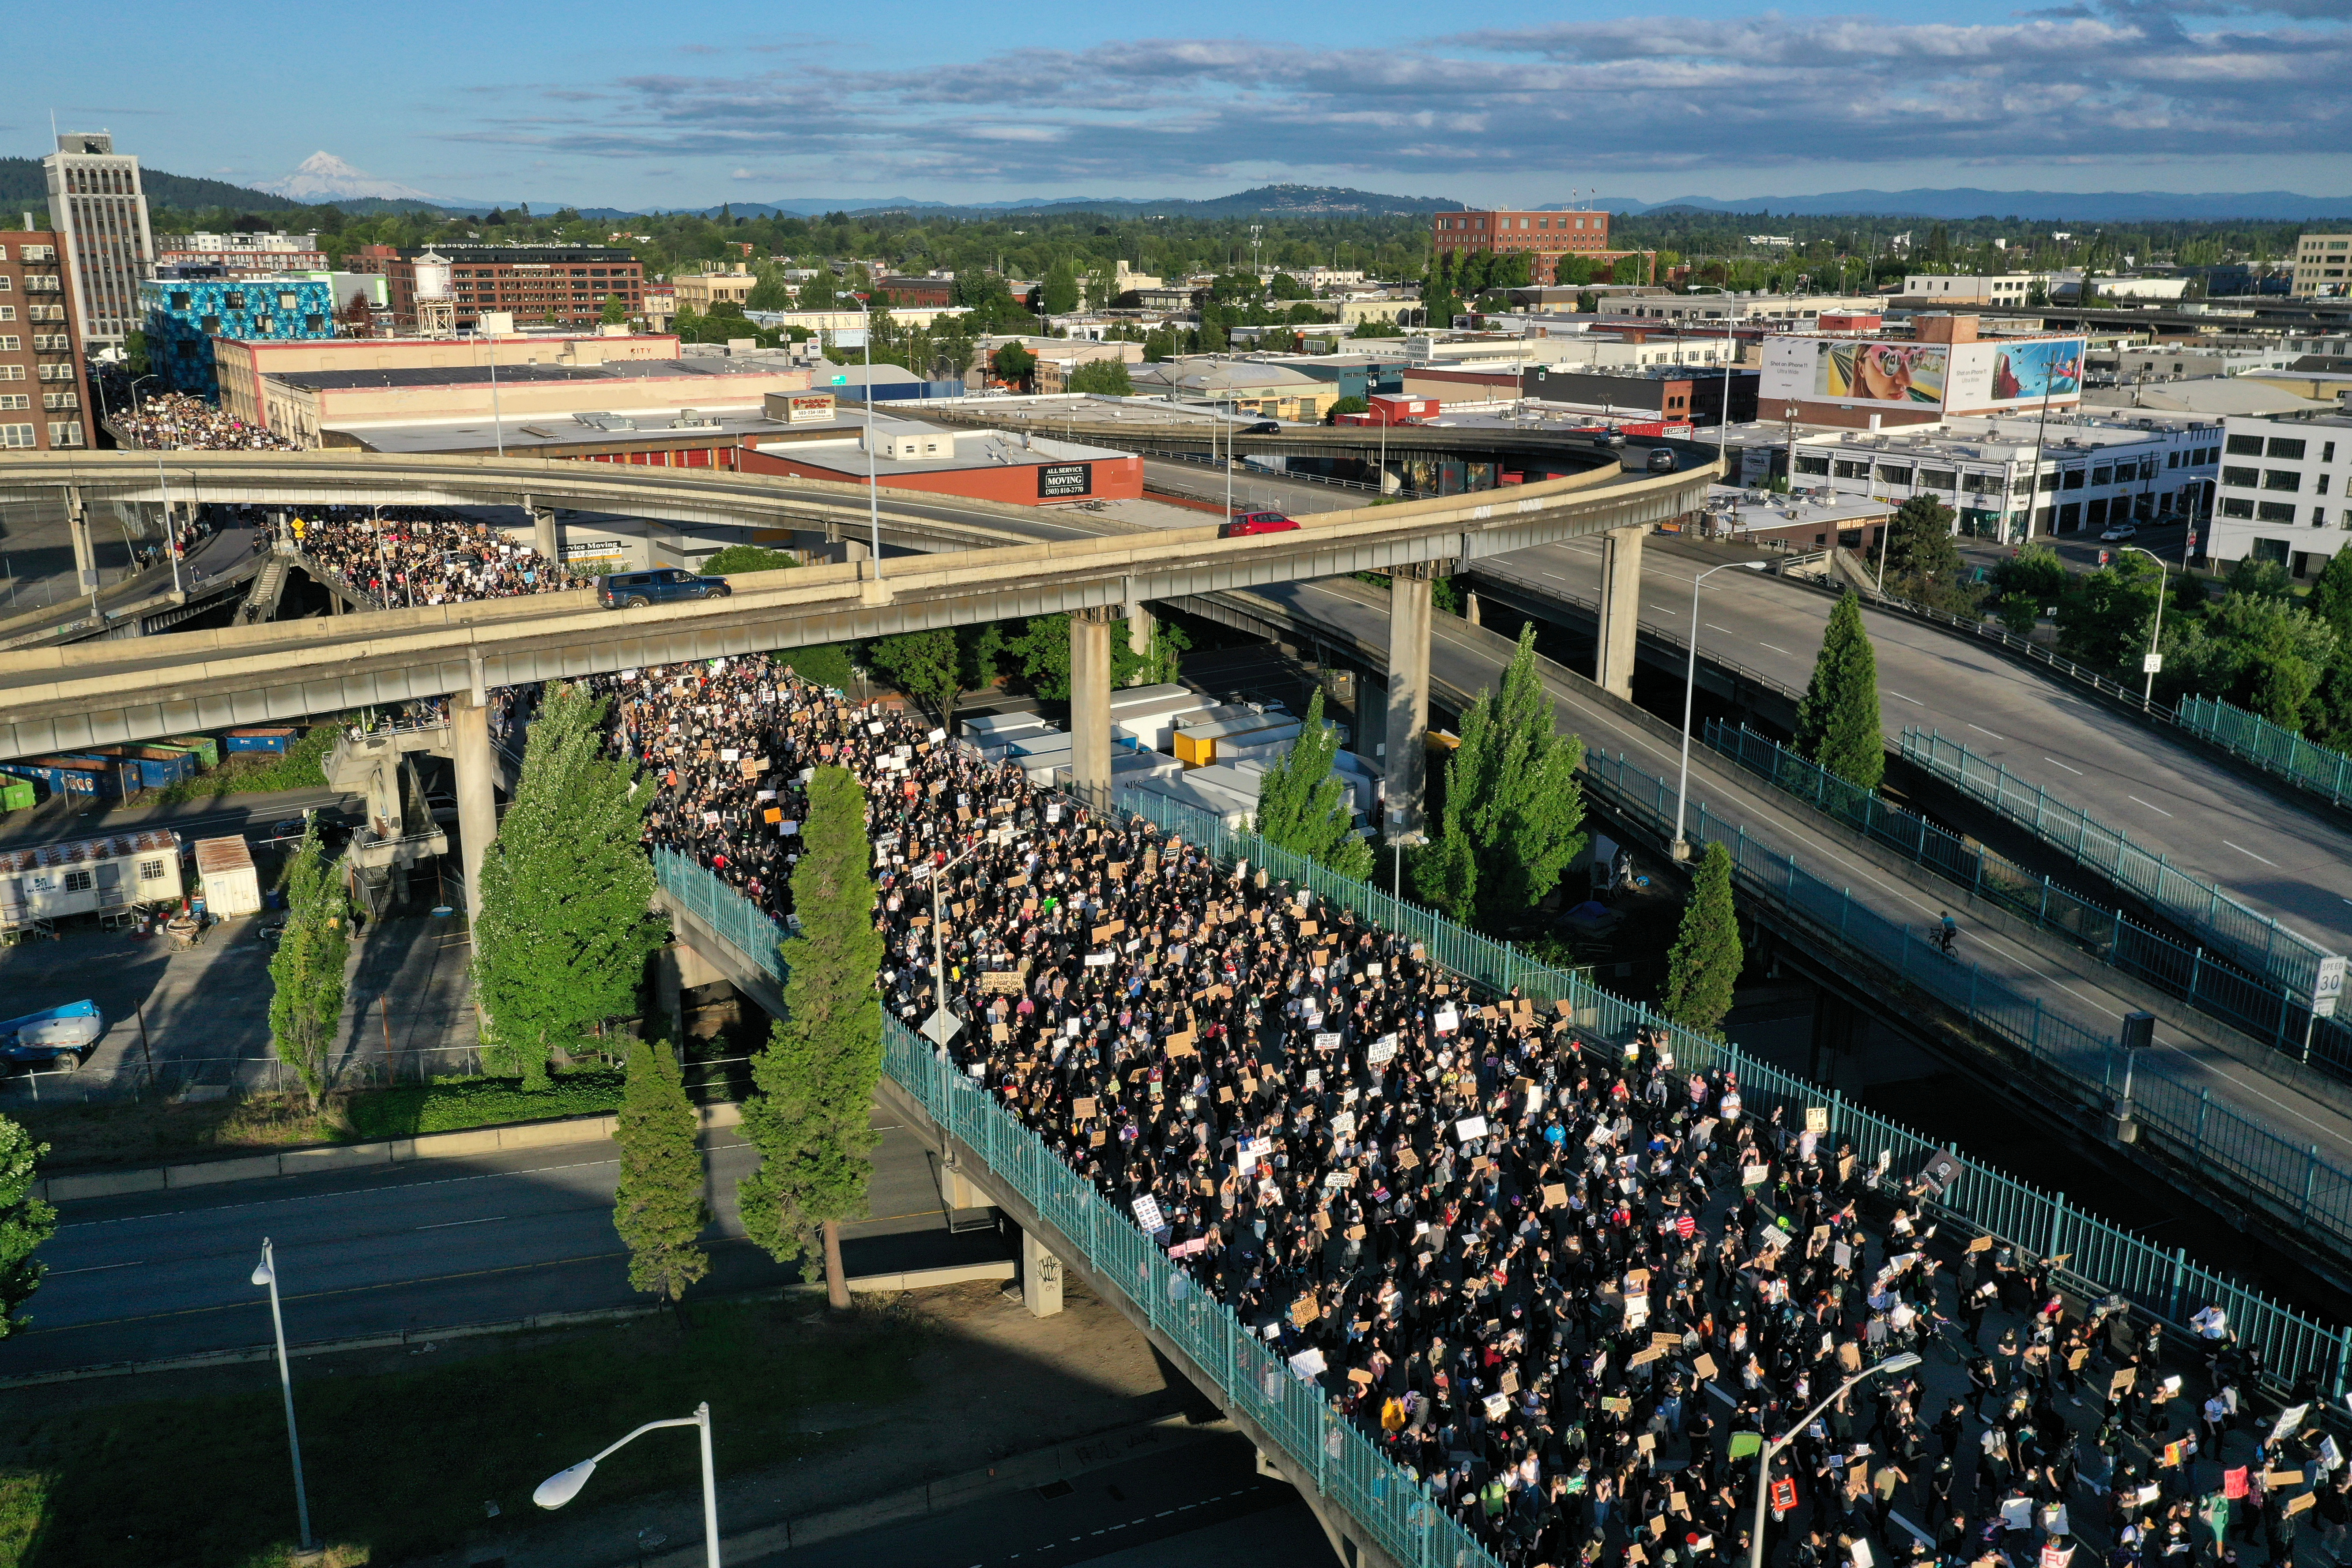 Protesters walk onto Morrison Bridge while rallying against the death in Minneapolis police custody of George Floyd, in Portland, Oregon, U.S. June 3, 2020. Picture taken with a drone. REUTERS/Terray Sylvester